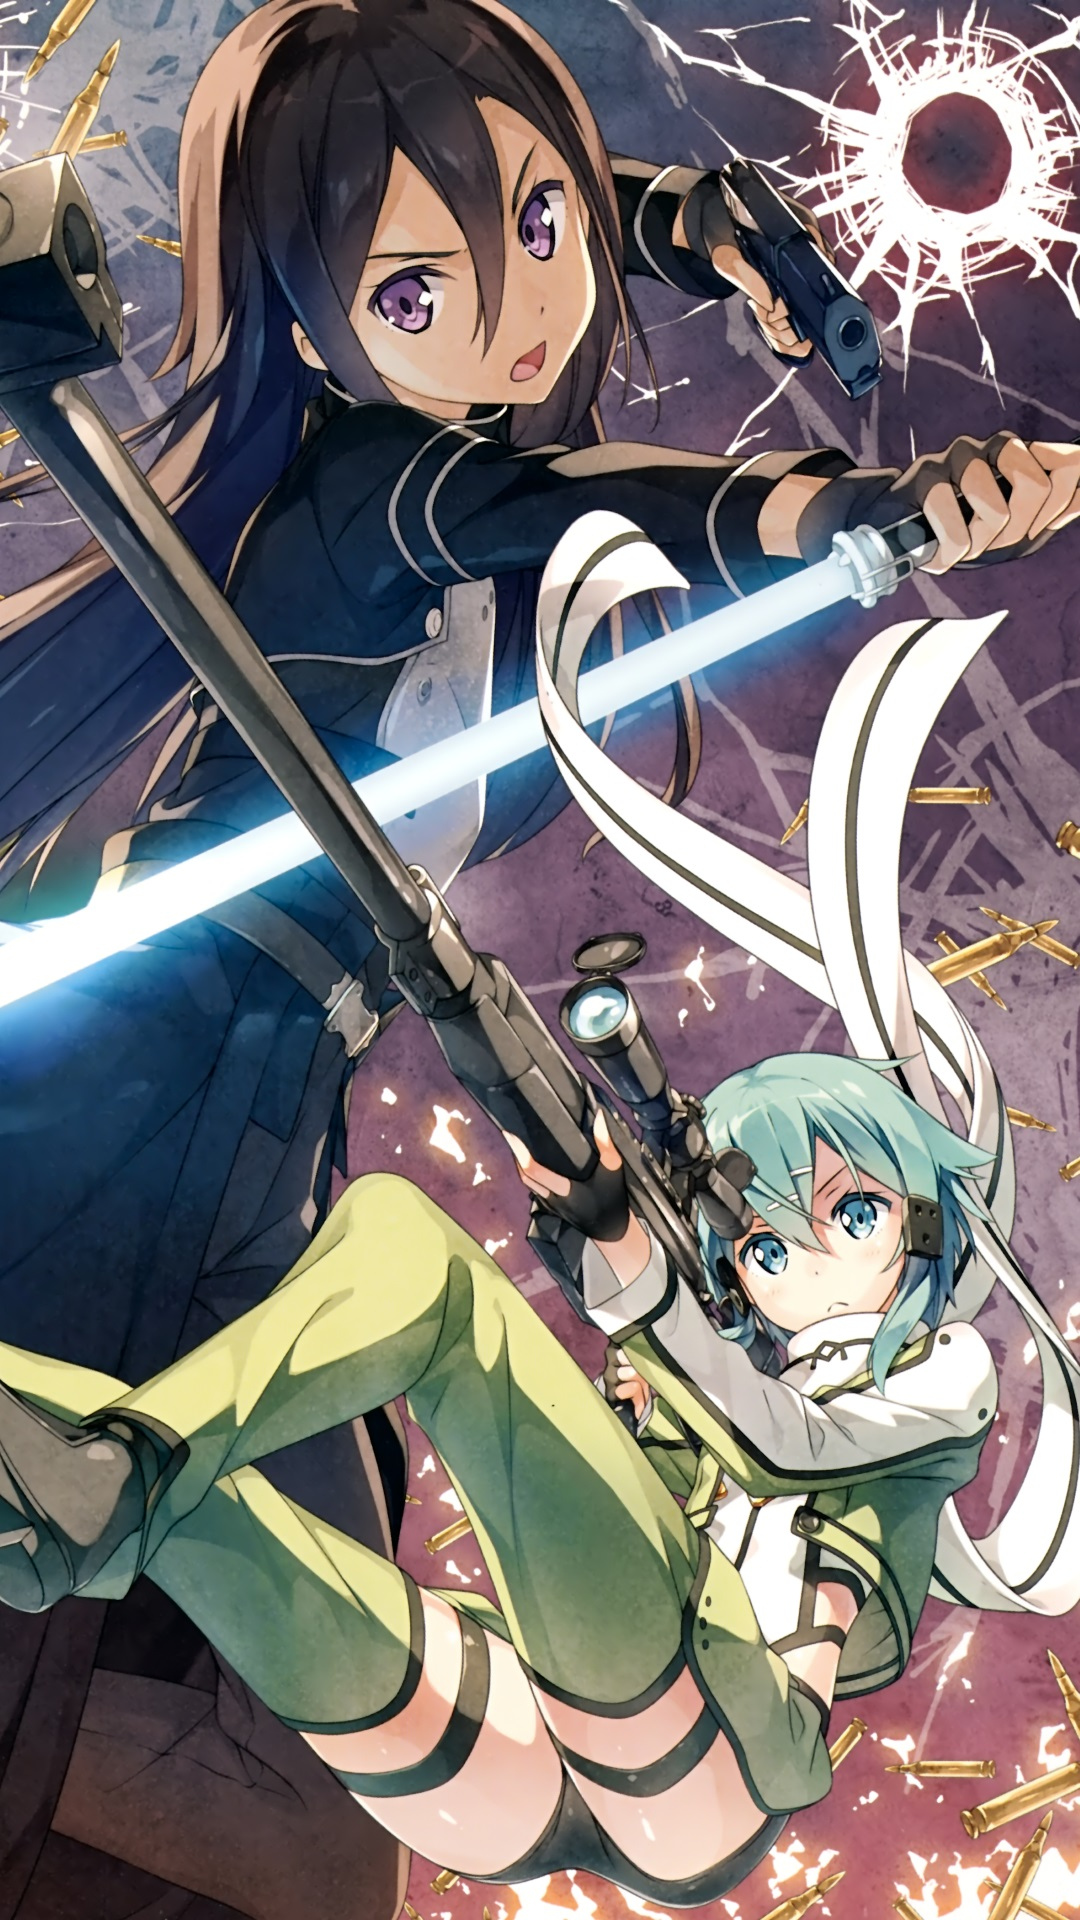 Sinon Sao Wallpapers 1920x1080 Full Hd 1080p Desktop Backgrounds